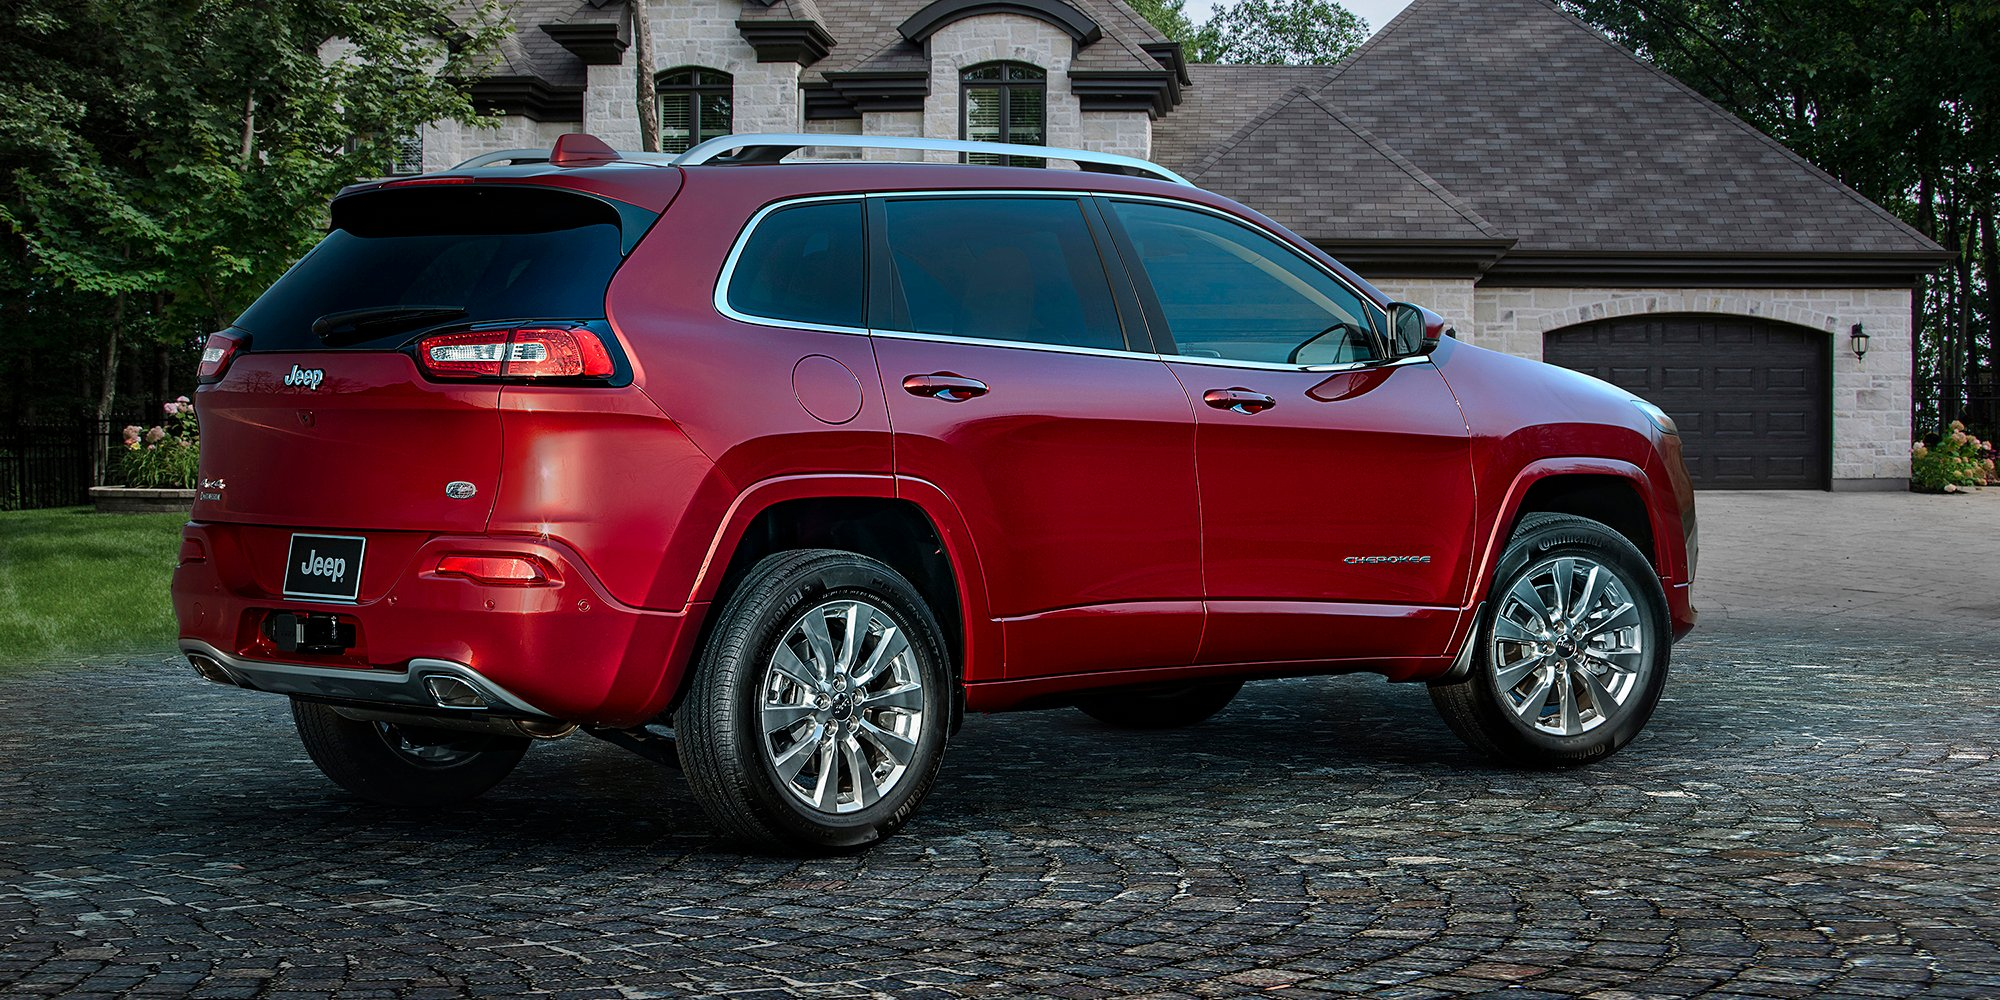 2018 jeep cherokee update revealed photos caradvice. Black Bedroom Furniture Sets. Home Design Ideas